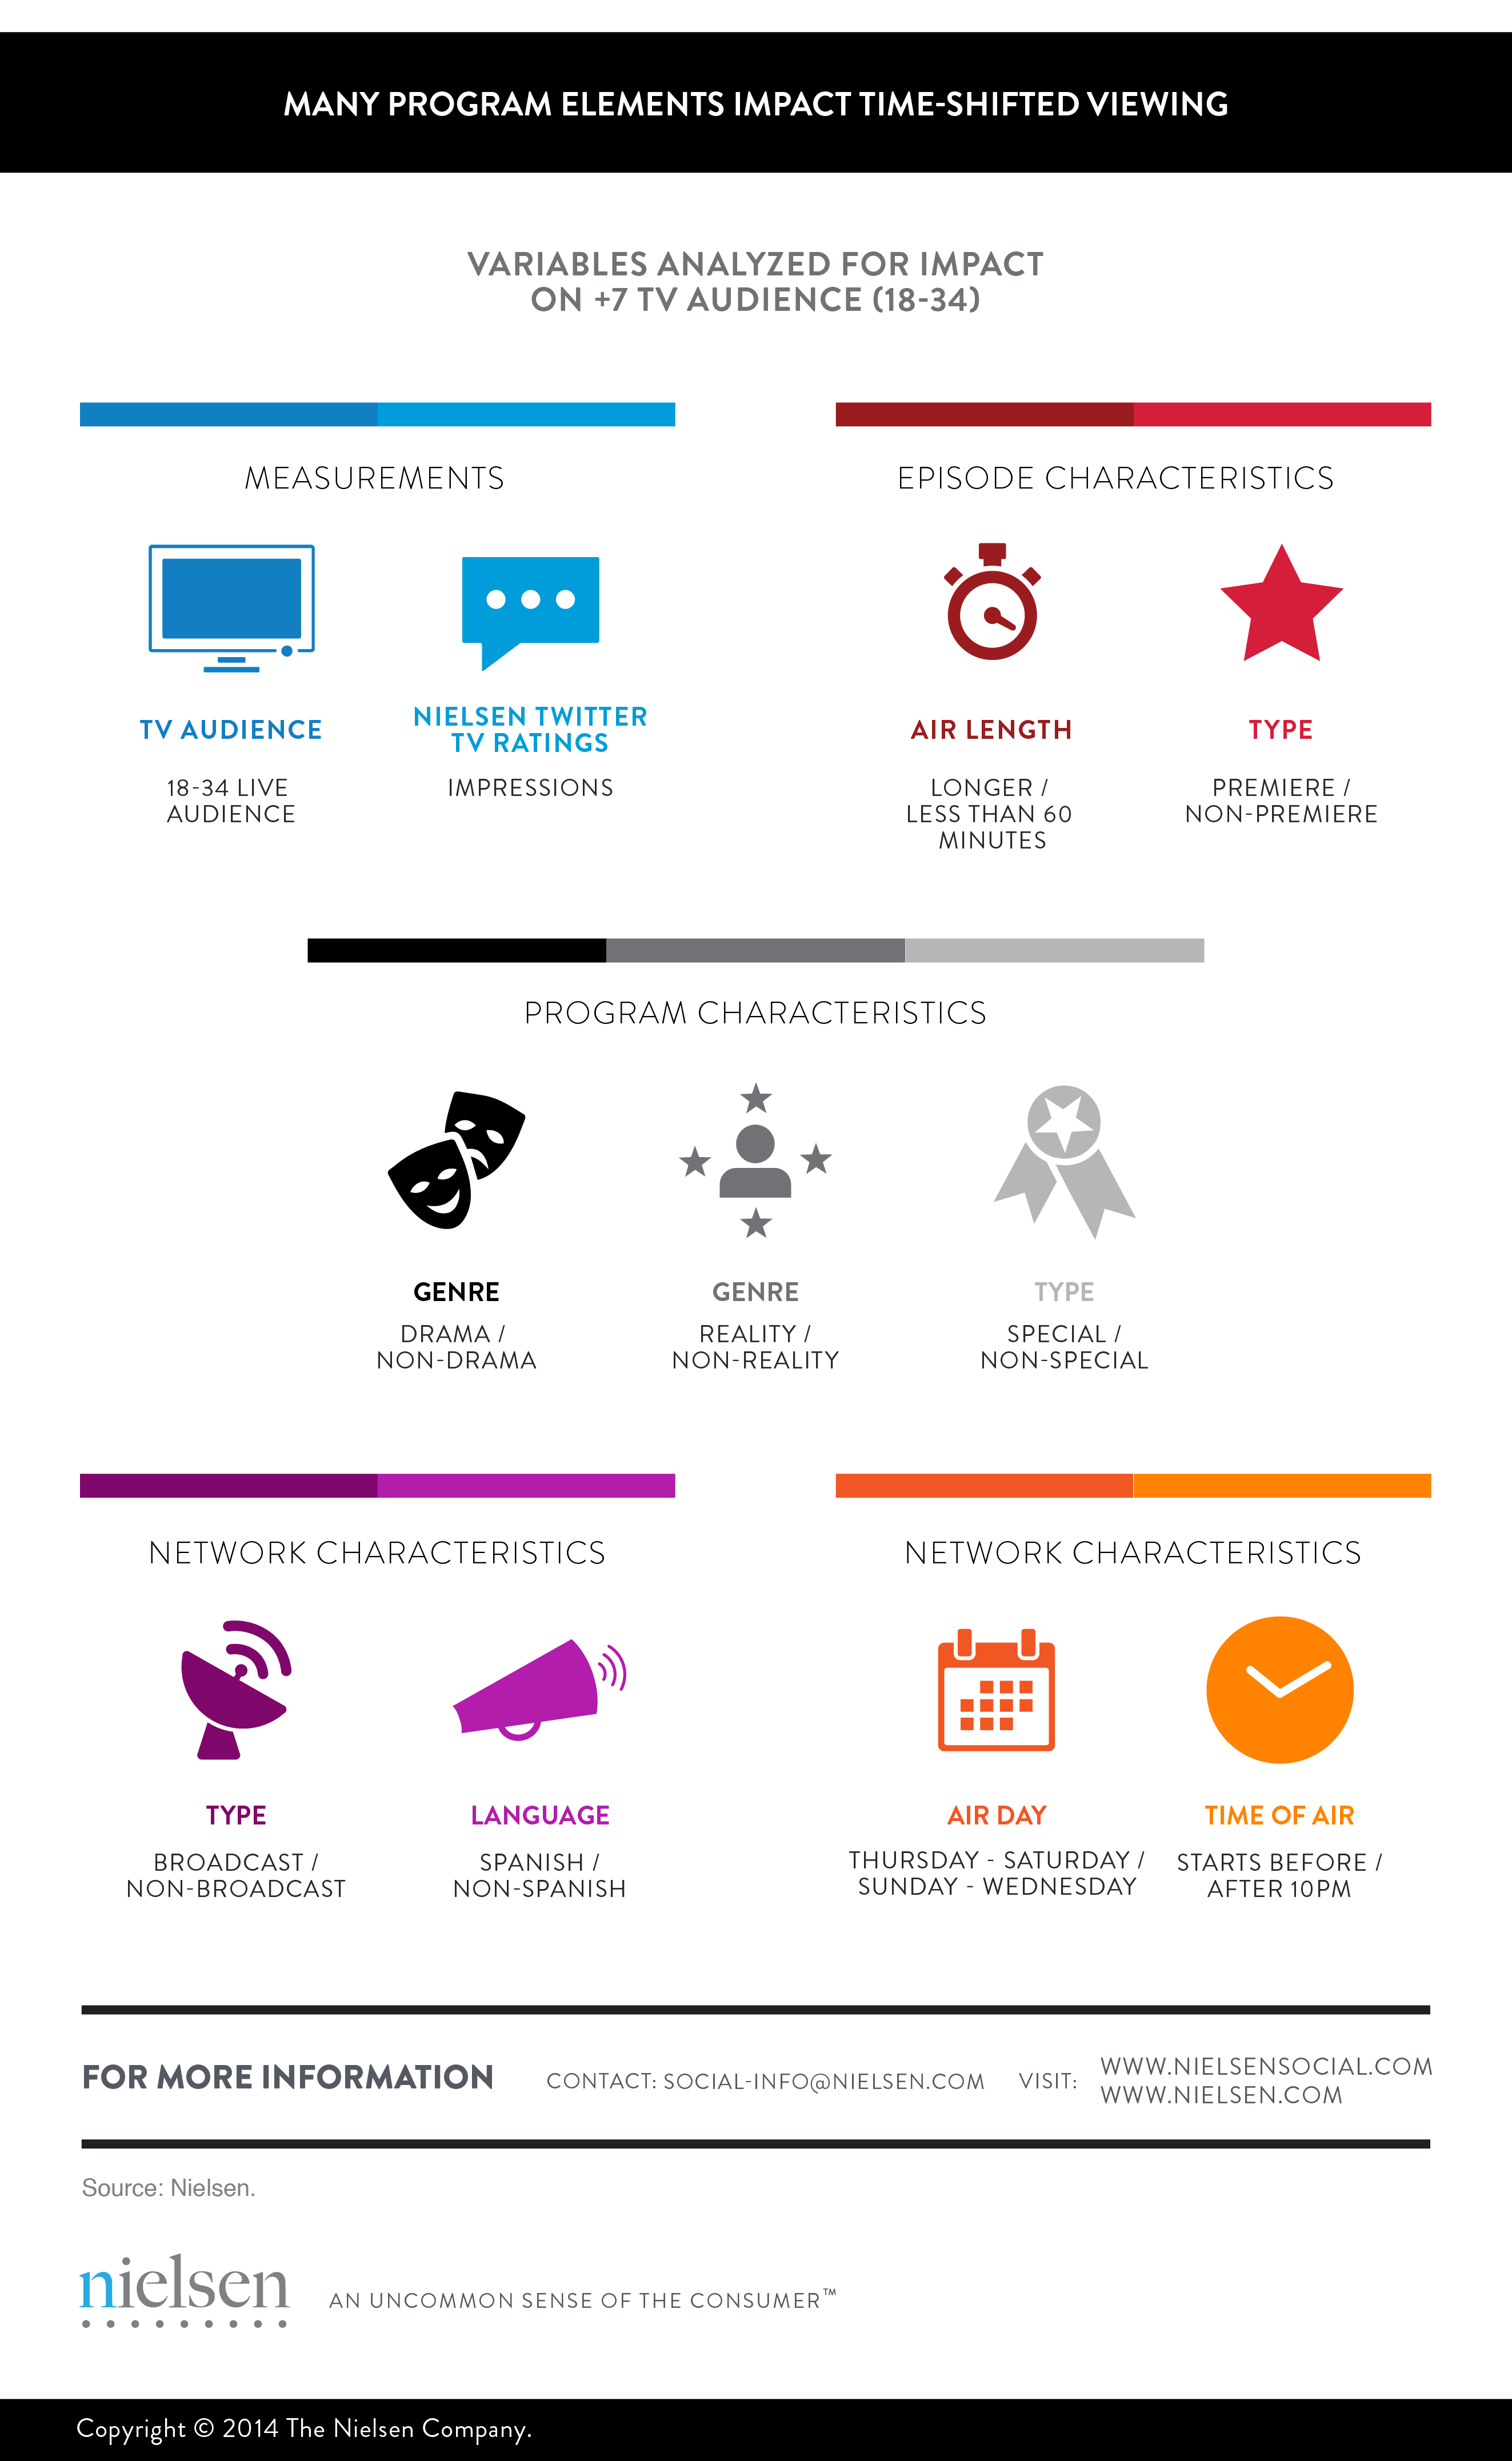 Many Program Elements Impact Time Shifted Viewing_NielsenSocial